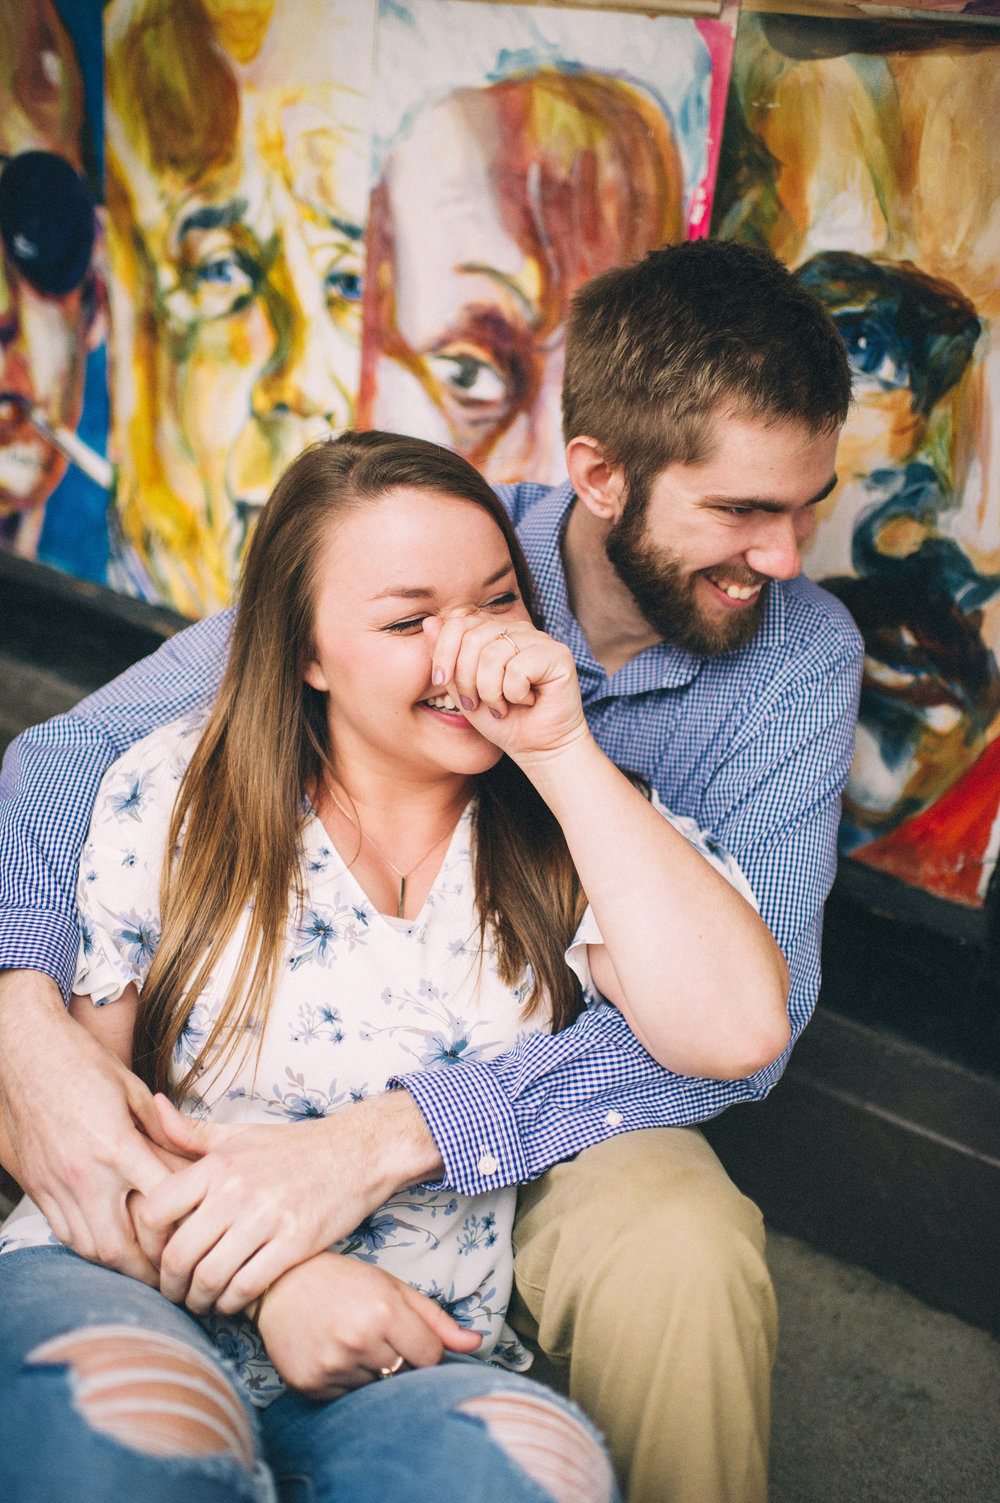 Maggie + Corey Engagement Session- Sarah Katherine Davis Photography - Carmichael's Book Store - Louisville Kentucky